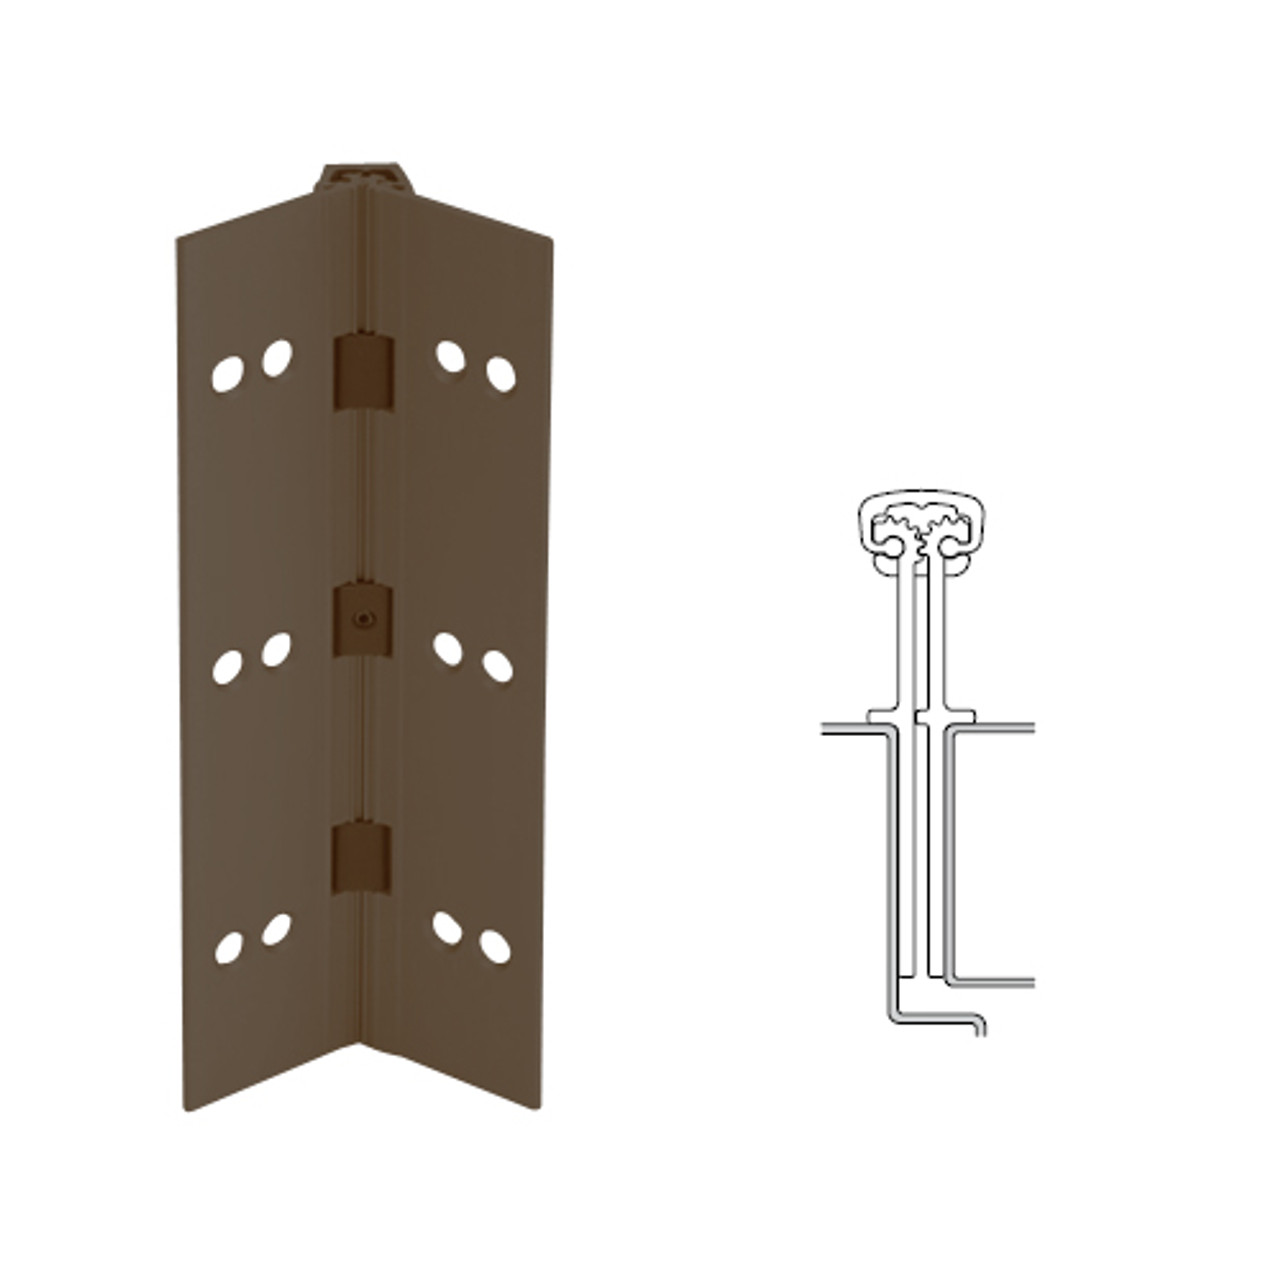 040XY-313AN-95-SECHM IVES Full Mortise Continuous Geared Hinges with Security Screws - Hex Pin Drive in Dark Bronze Anodized